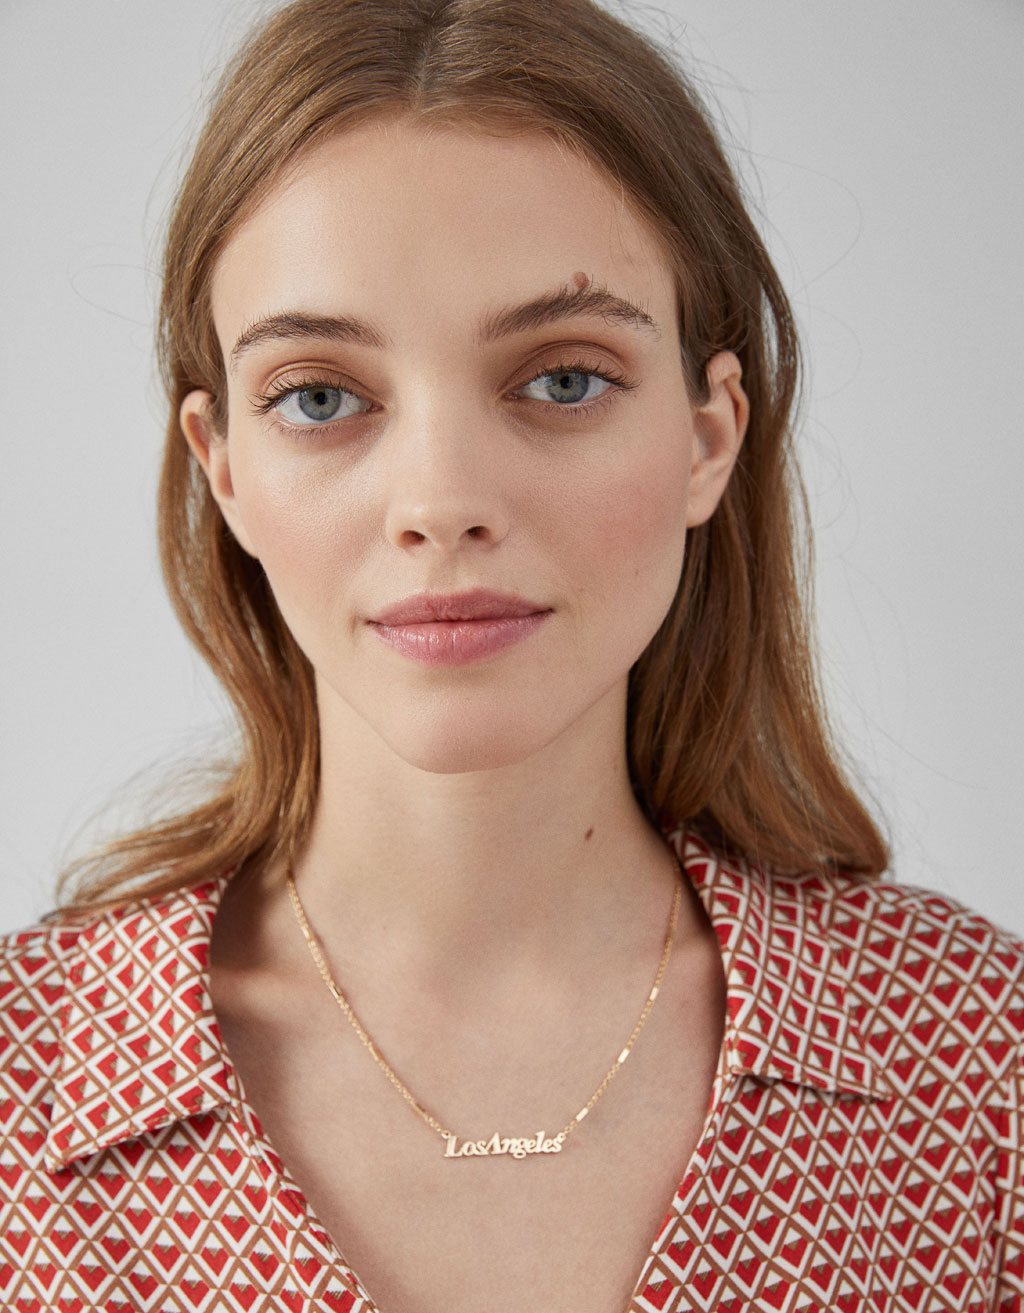 Los Angeles Necklace by Bershka